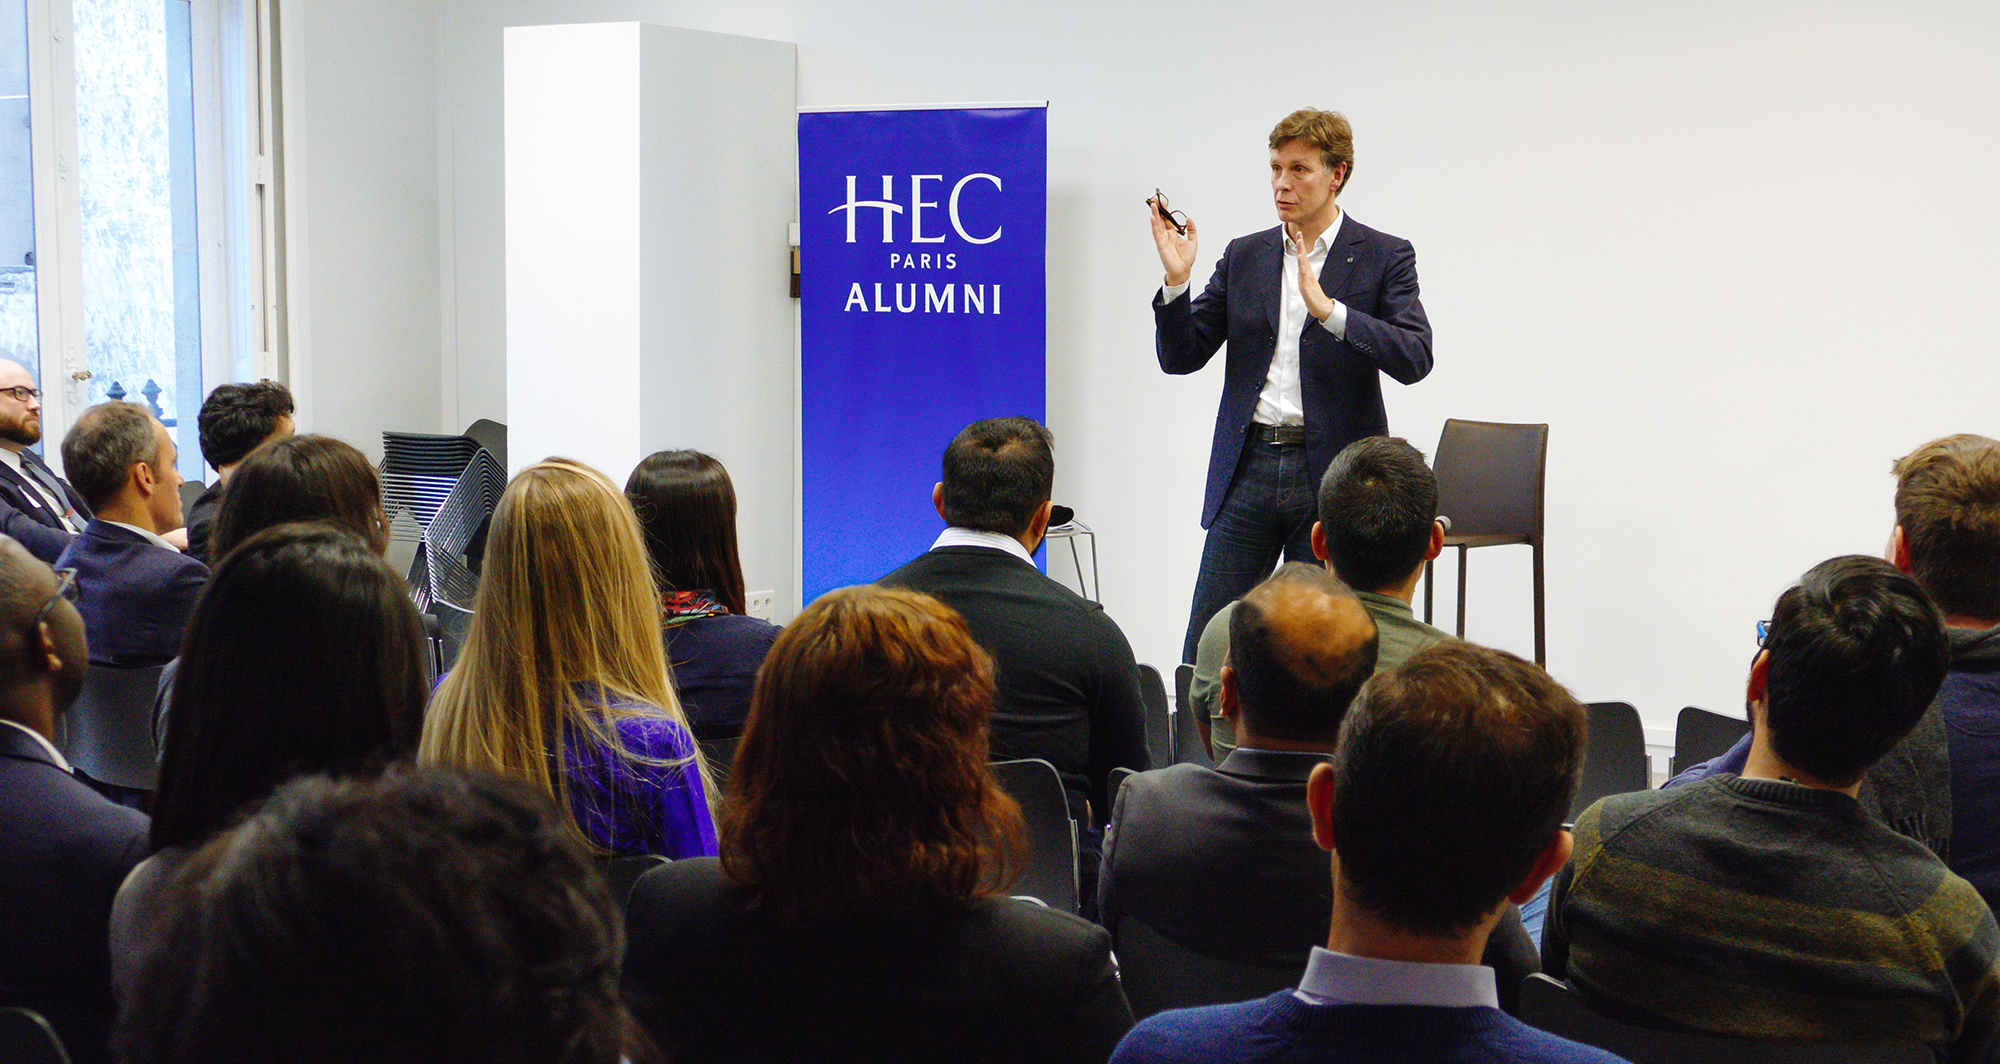 From Athlete to CEO - HEC Paris MBA News